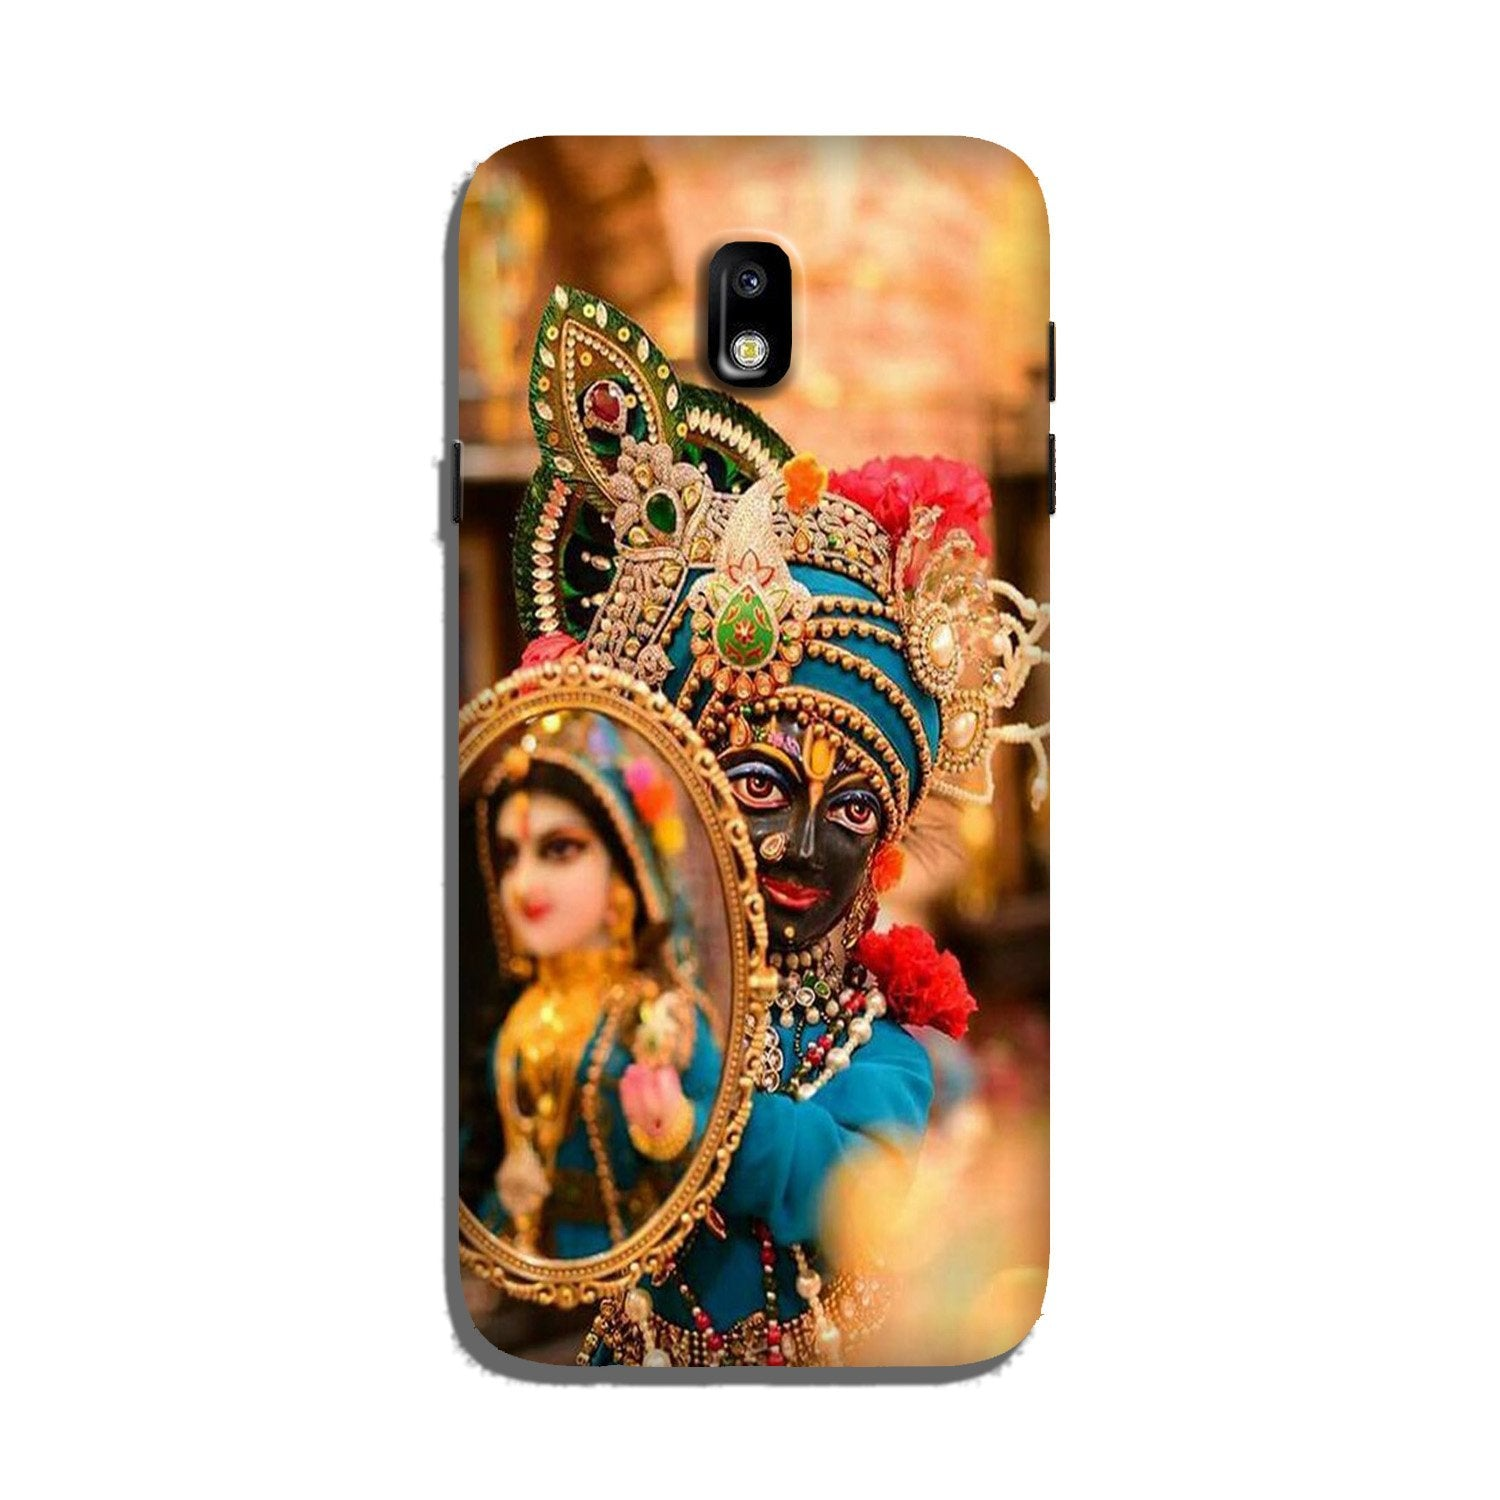 Lord Krishna5 Case for Galaxy J7 Pro